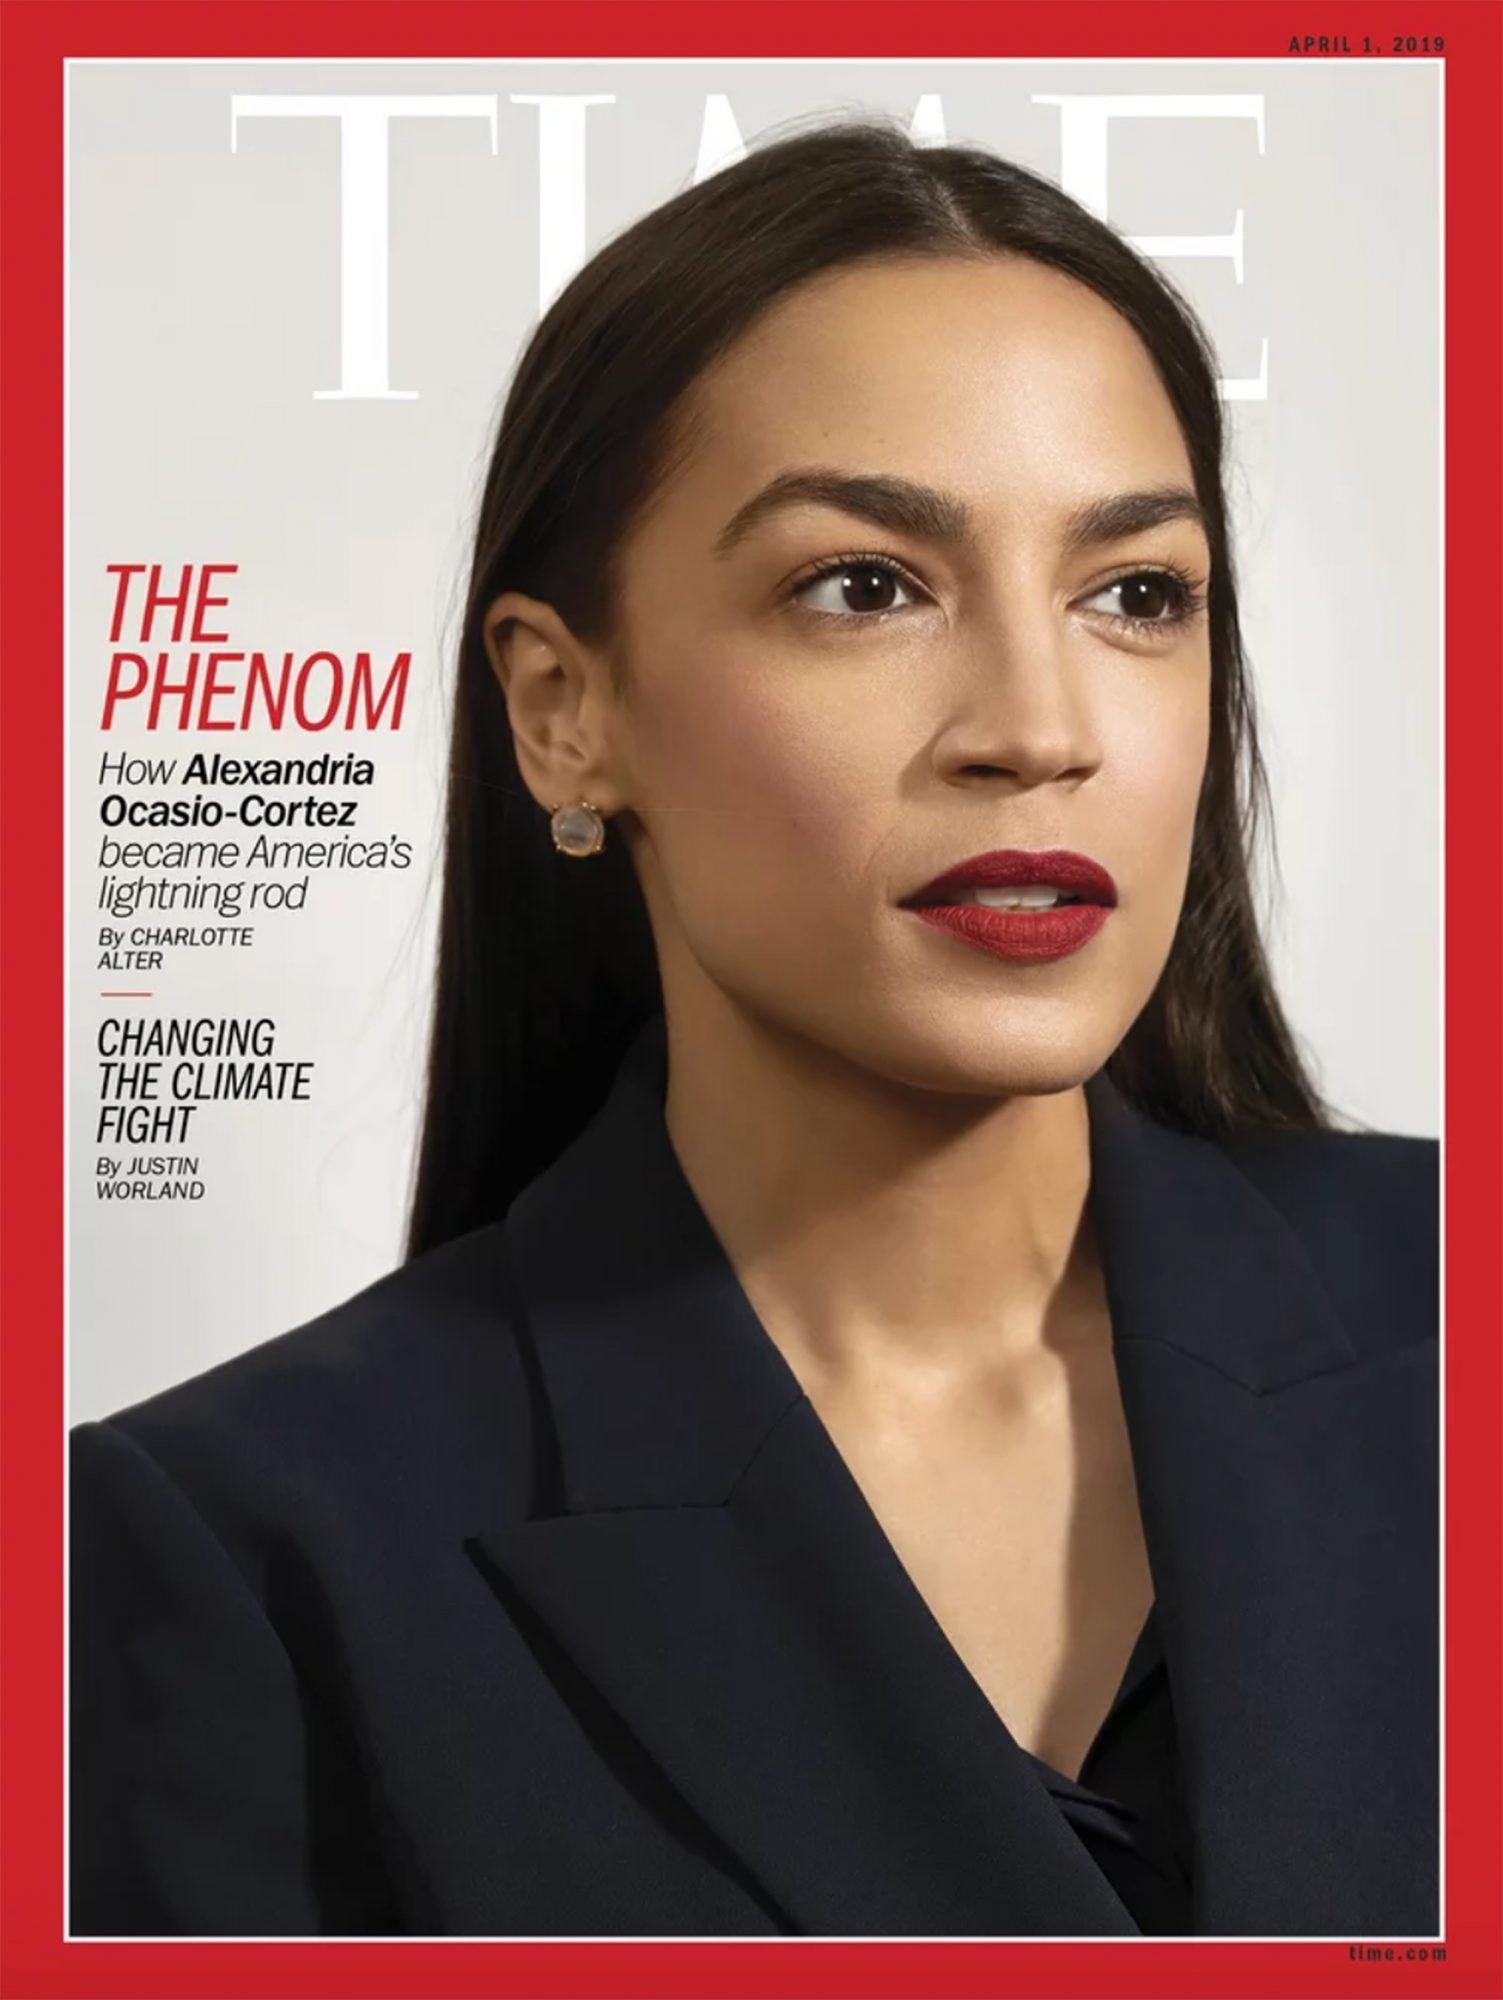 Rep. Alexandria Ocasio-Cortez on the cover of TIME magzazine